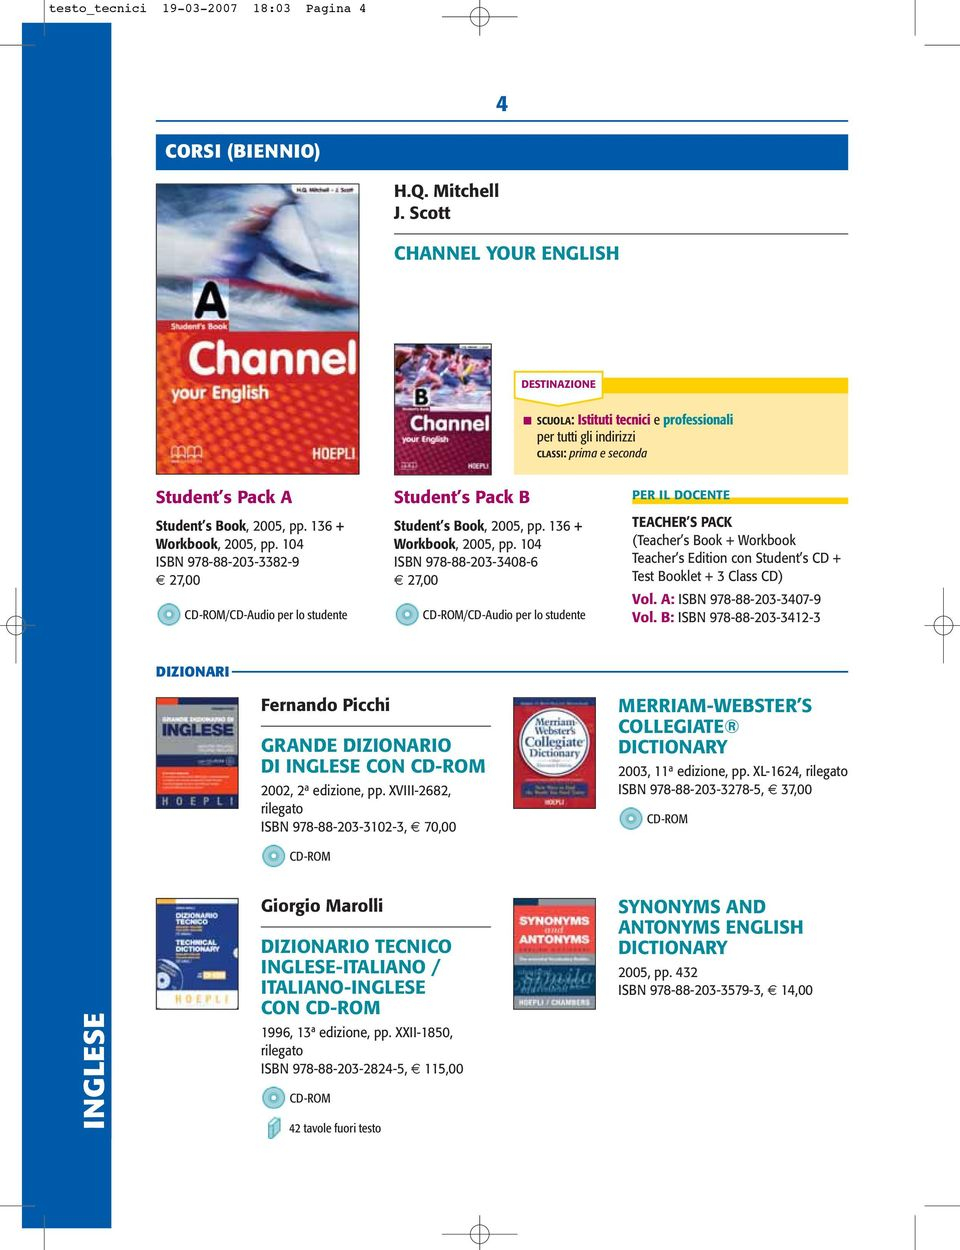 104 ISBN 978-88-203-3382-9 27,00 CD-ROM/CD-Audio per lo studente Student s Pack B Student s Book, 2005, pp. 136 + Workbook, 2005, pp.